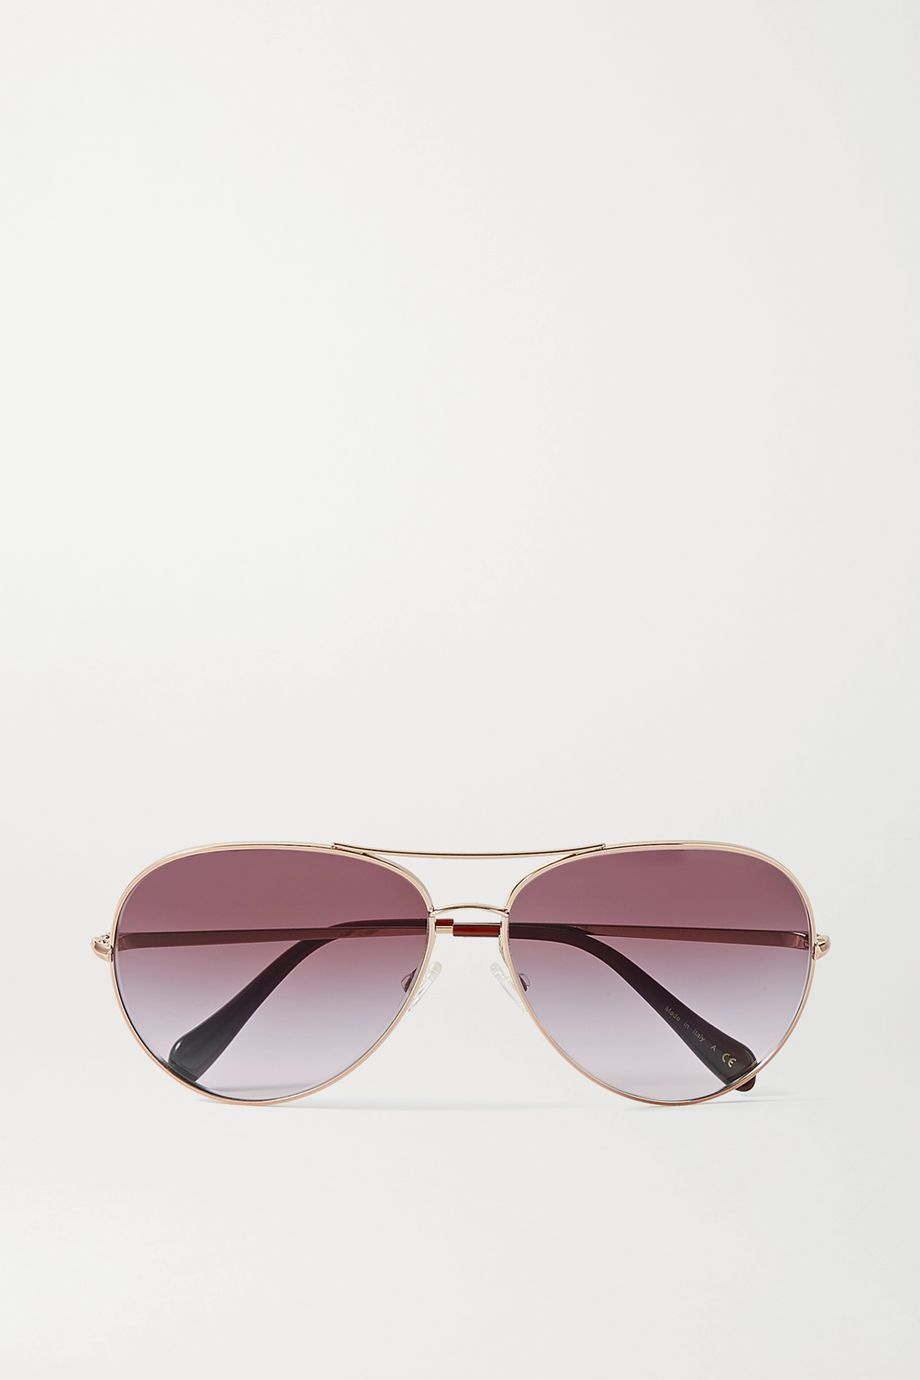 Oliver Peoples Sayer aviator-style rose gold-tone sunglasses